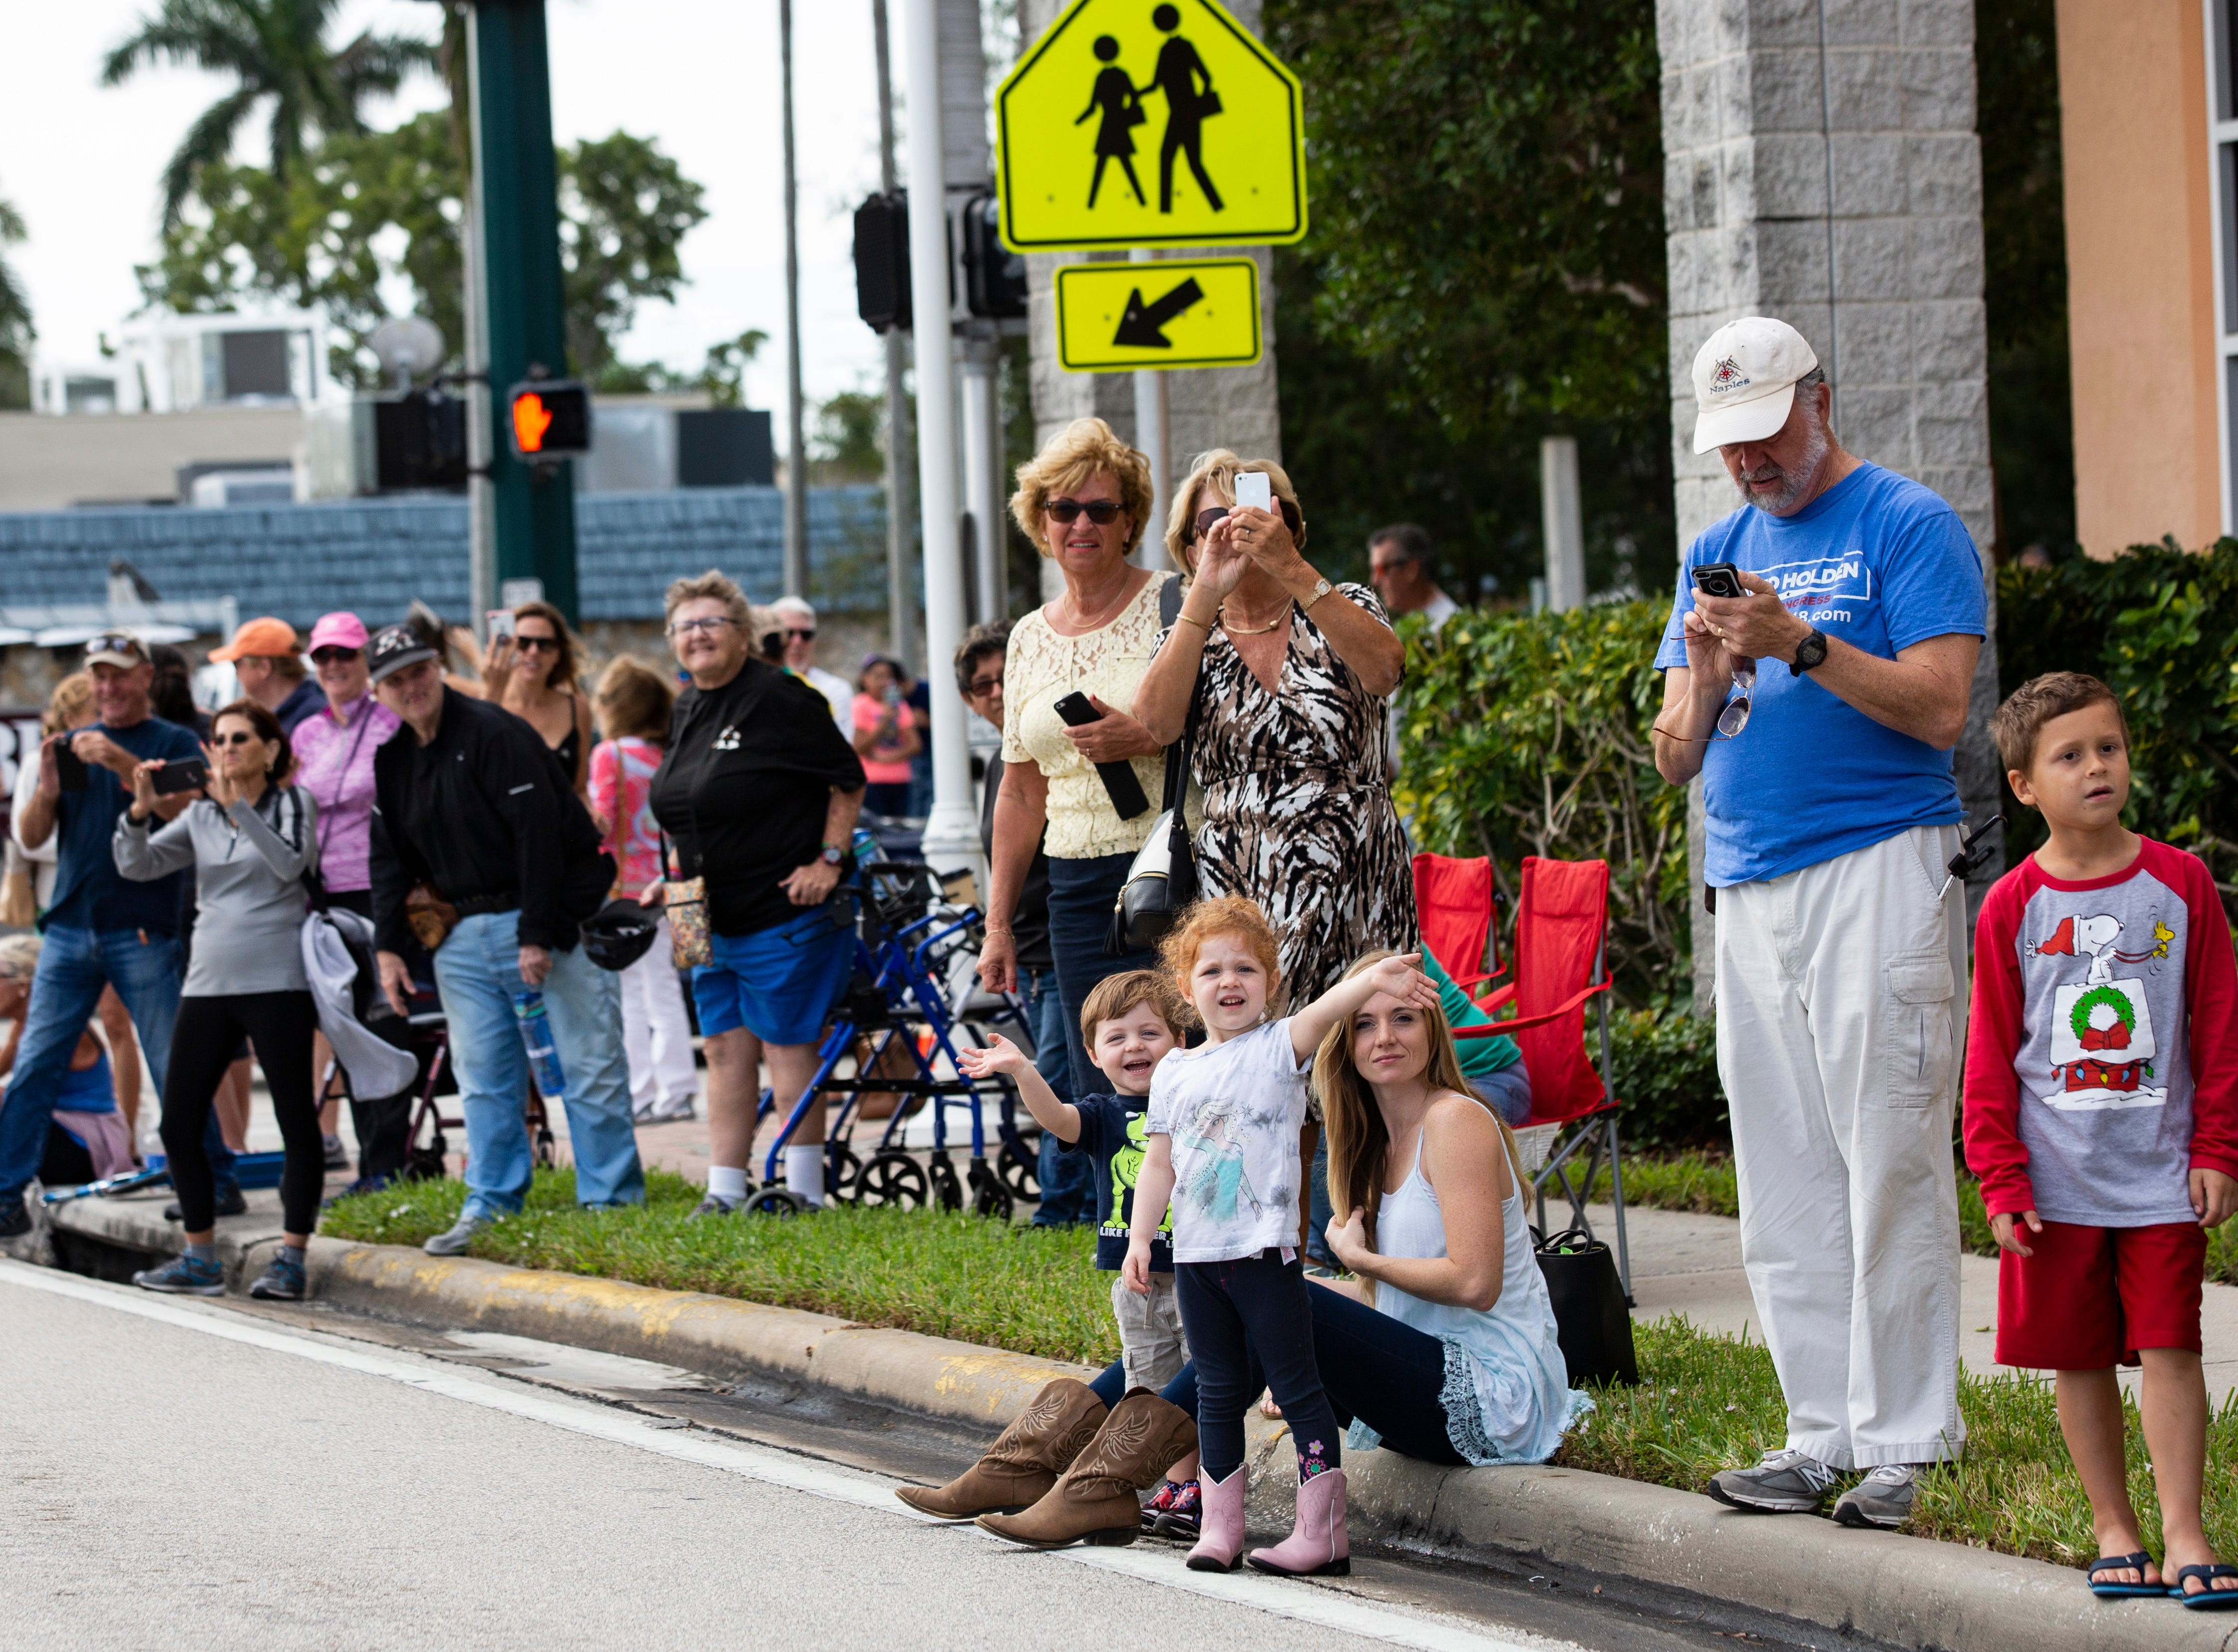 The 70th annual Swamp Buggy Parade hits downtown Naples on Saturday morning, Nov. 3, 2018. The parade featured past Swamp Buggy Queens, Naples High School marching band, racing buggies and Swampy - the race mascot, among other things.